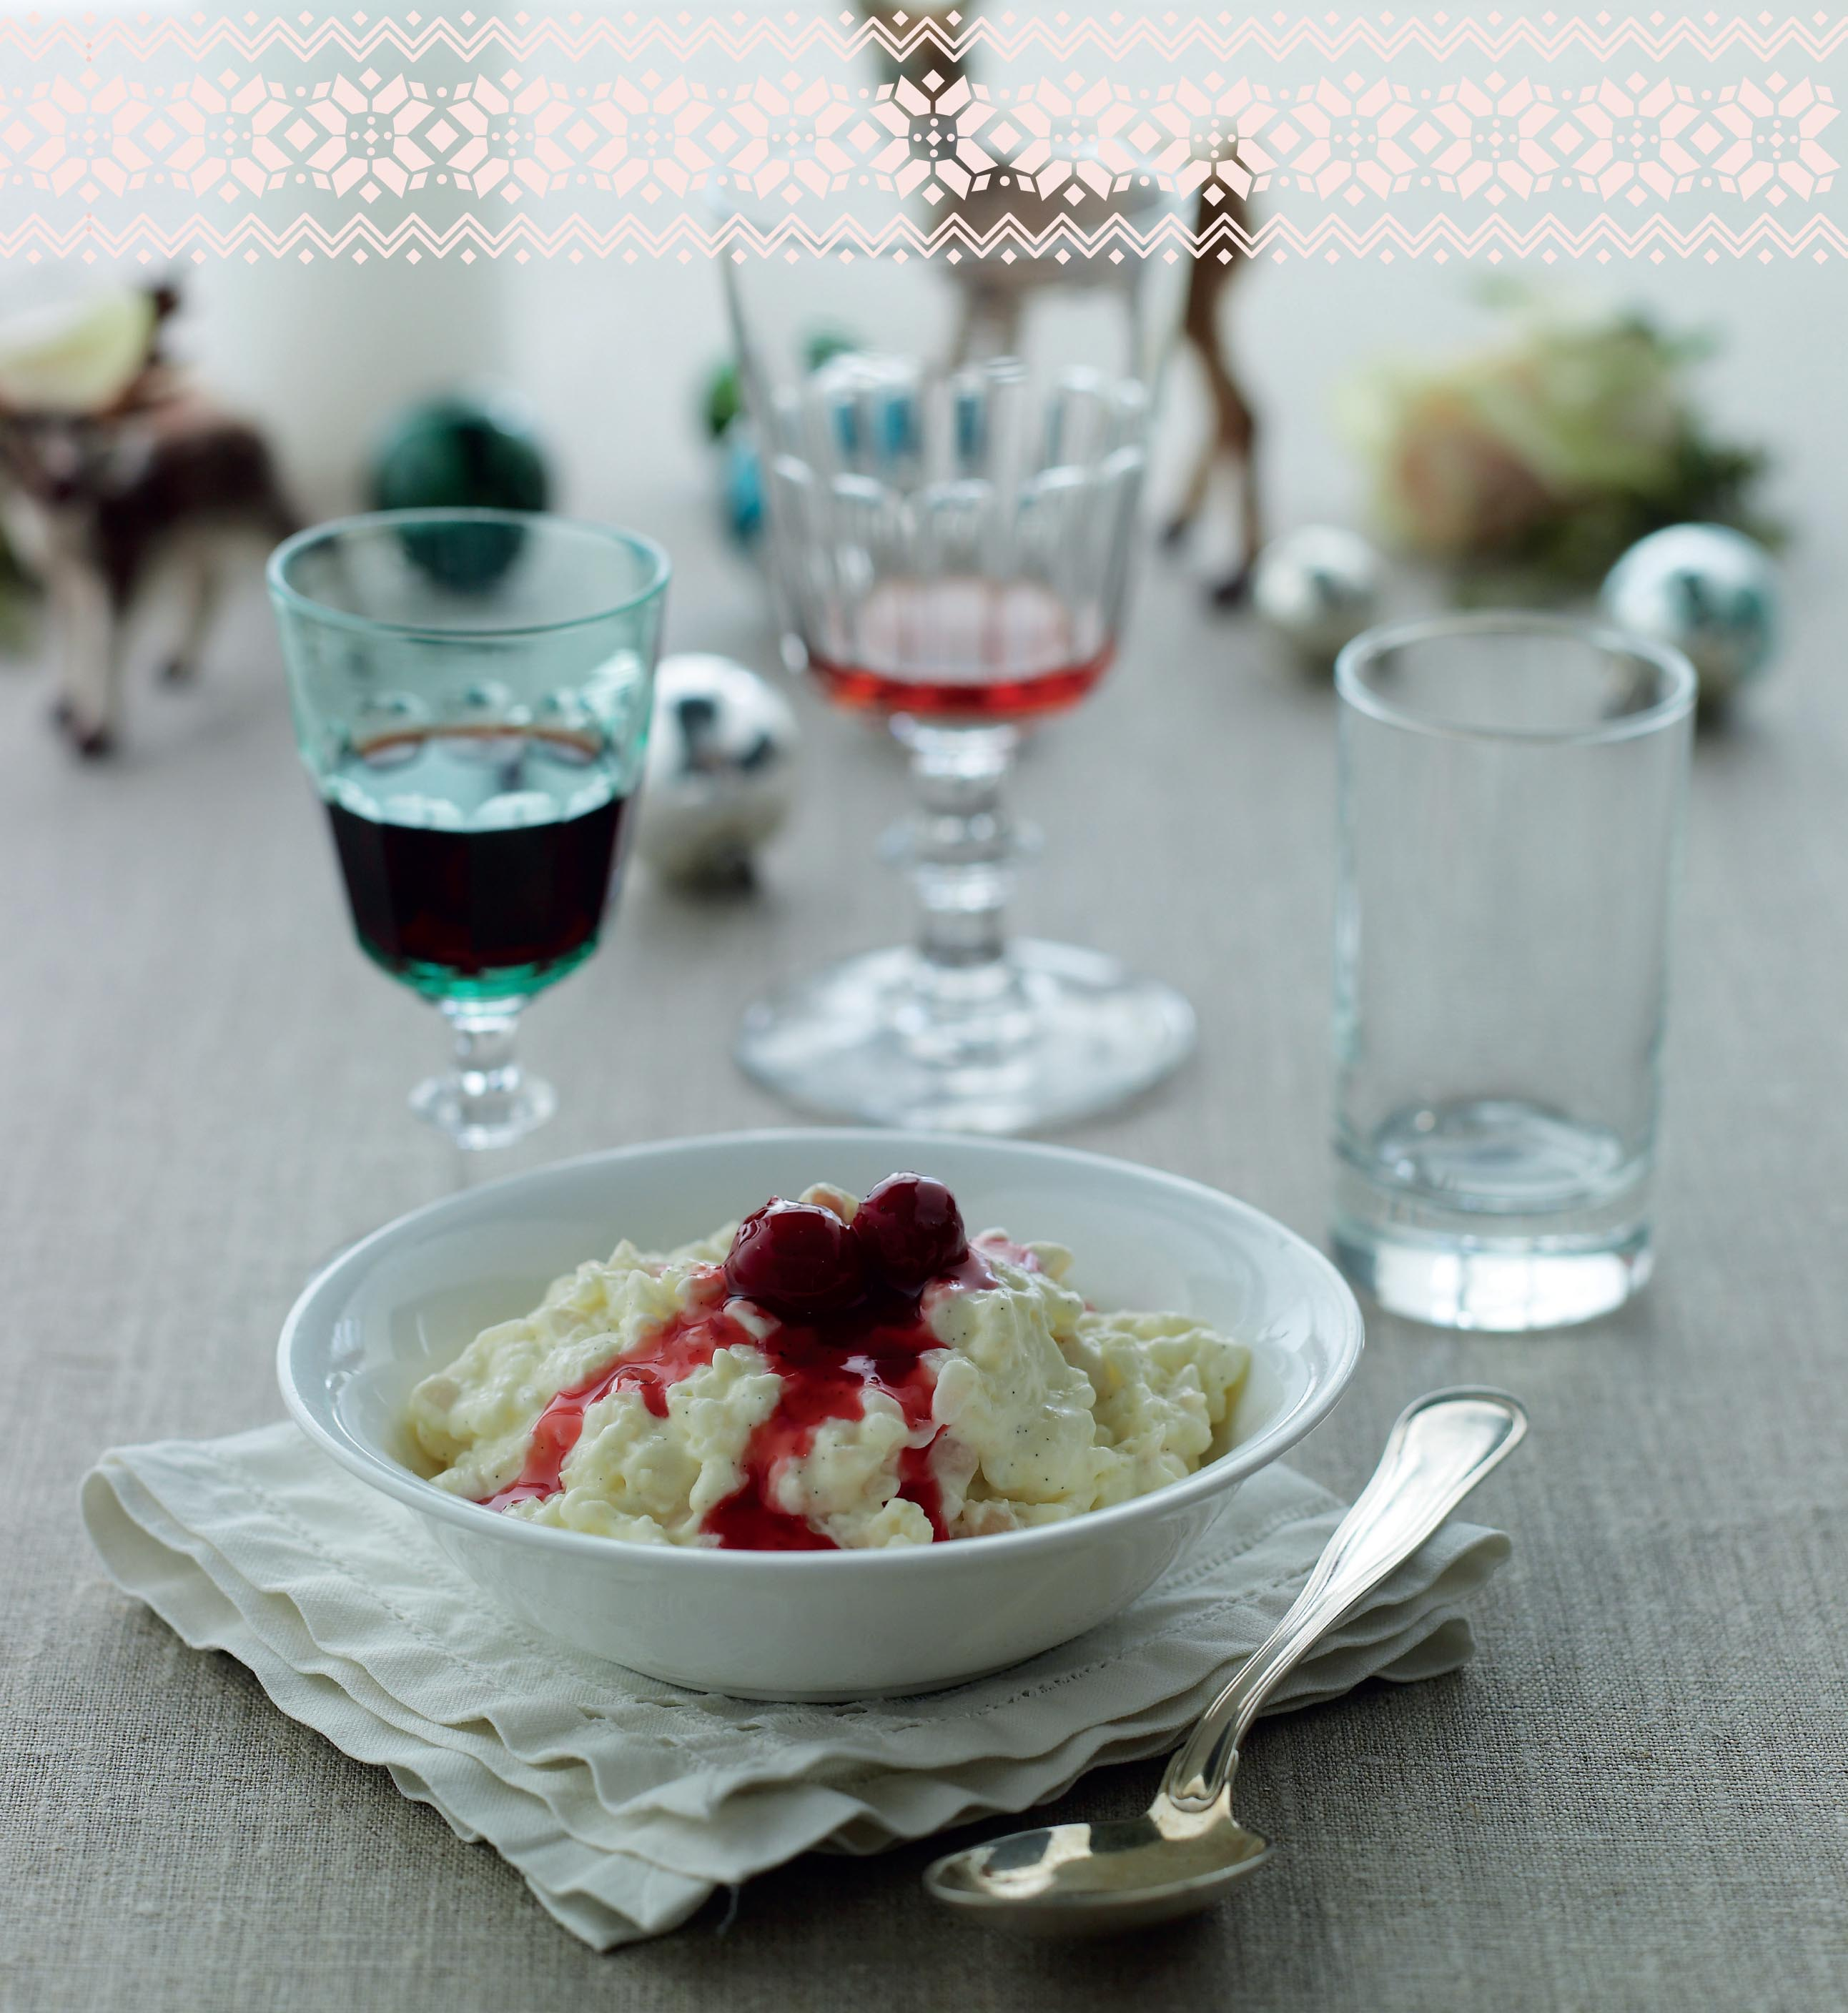 Rice pudding with hot cherry sauce